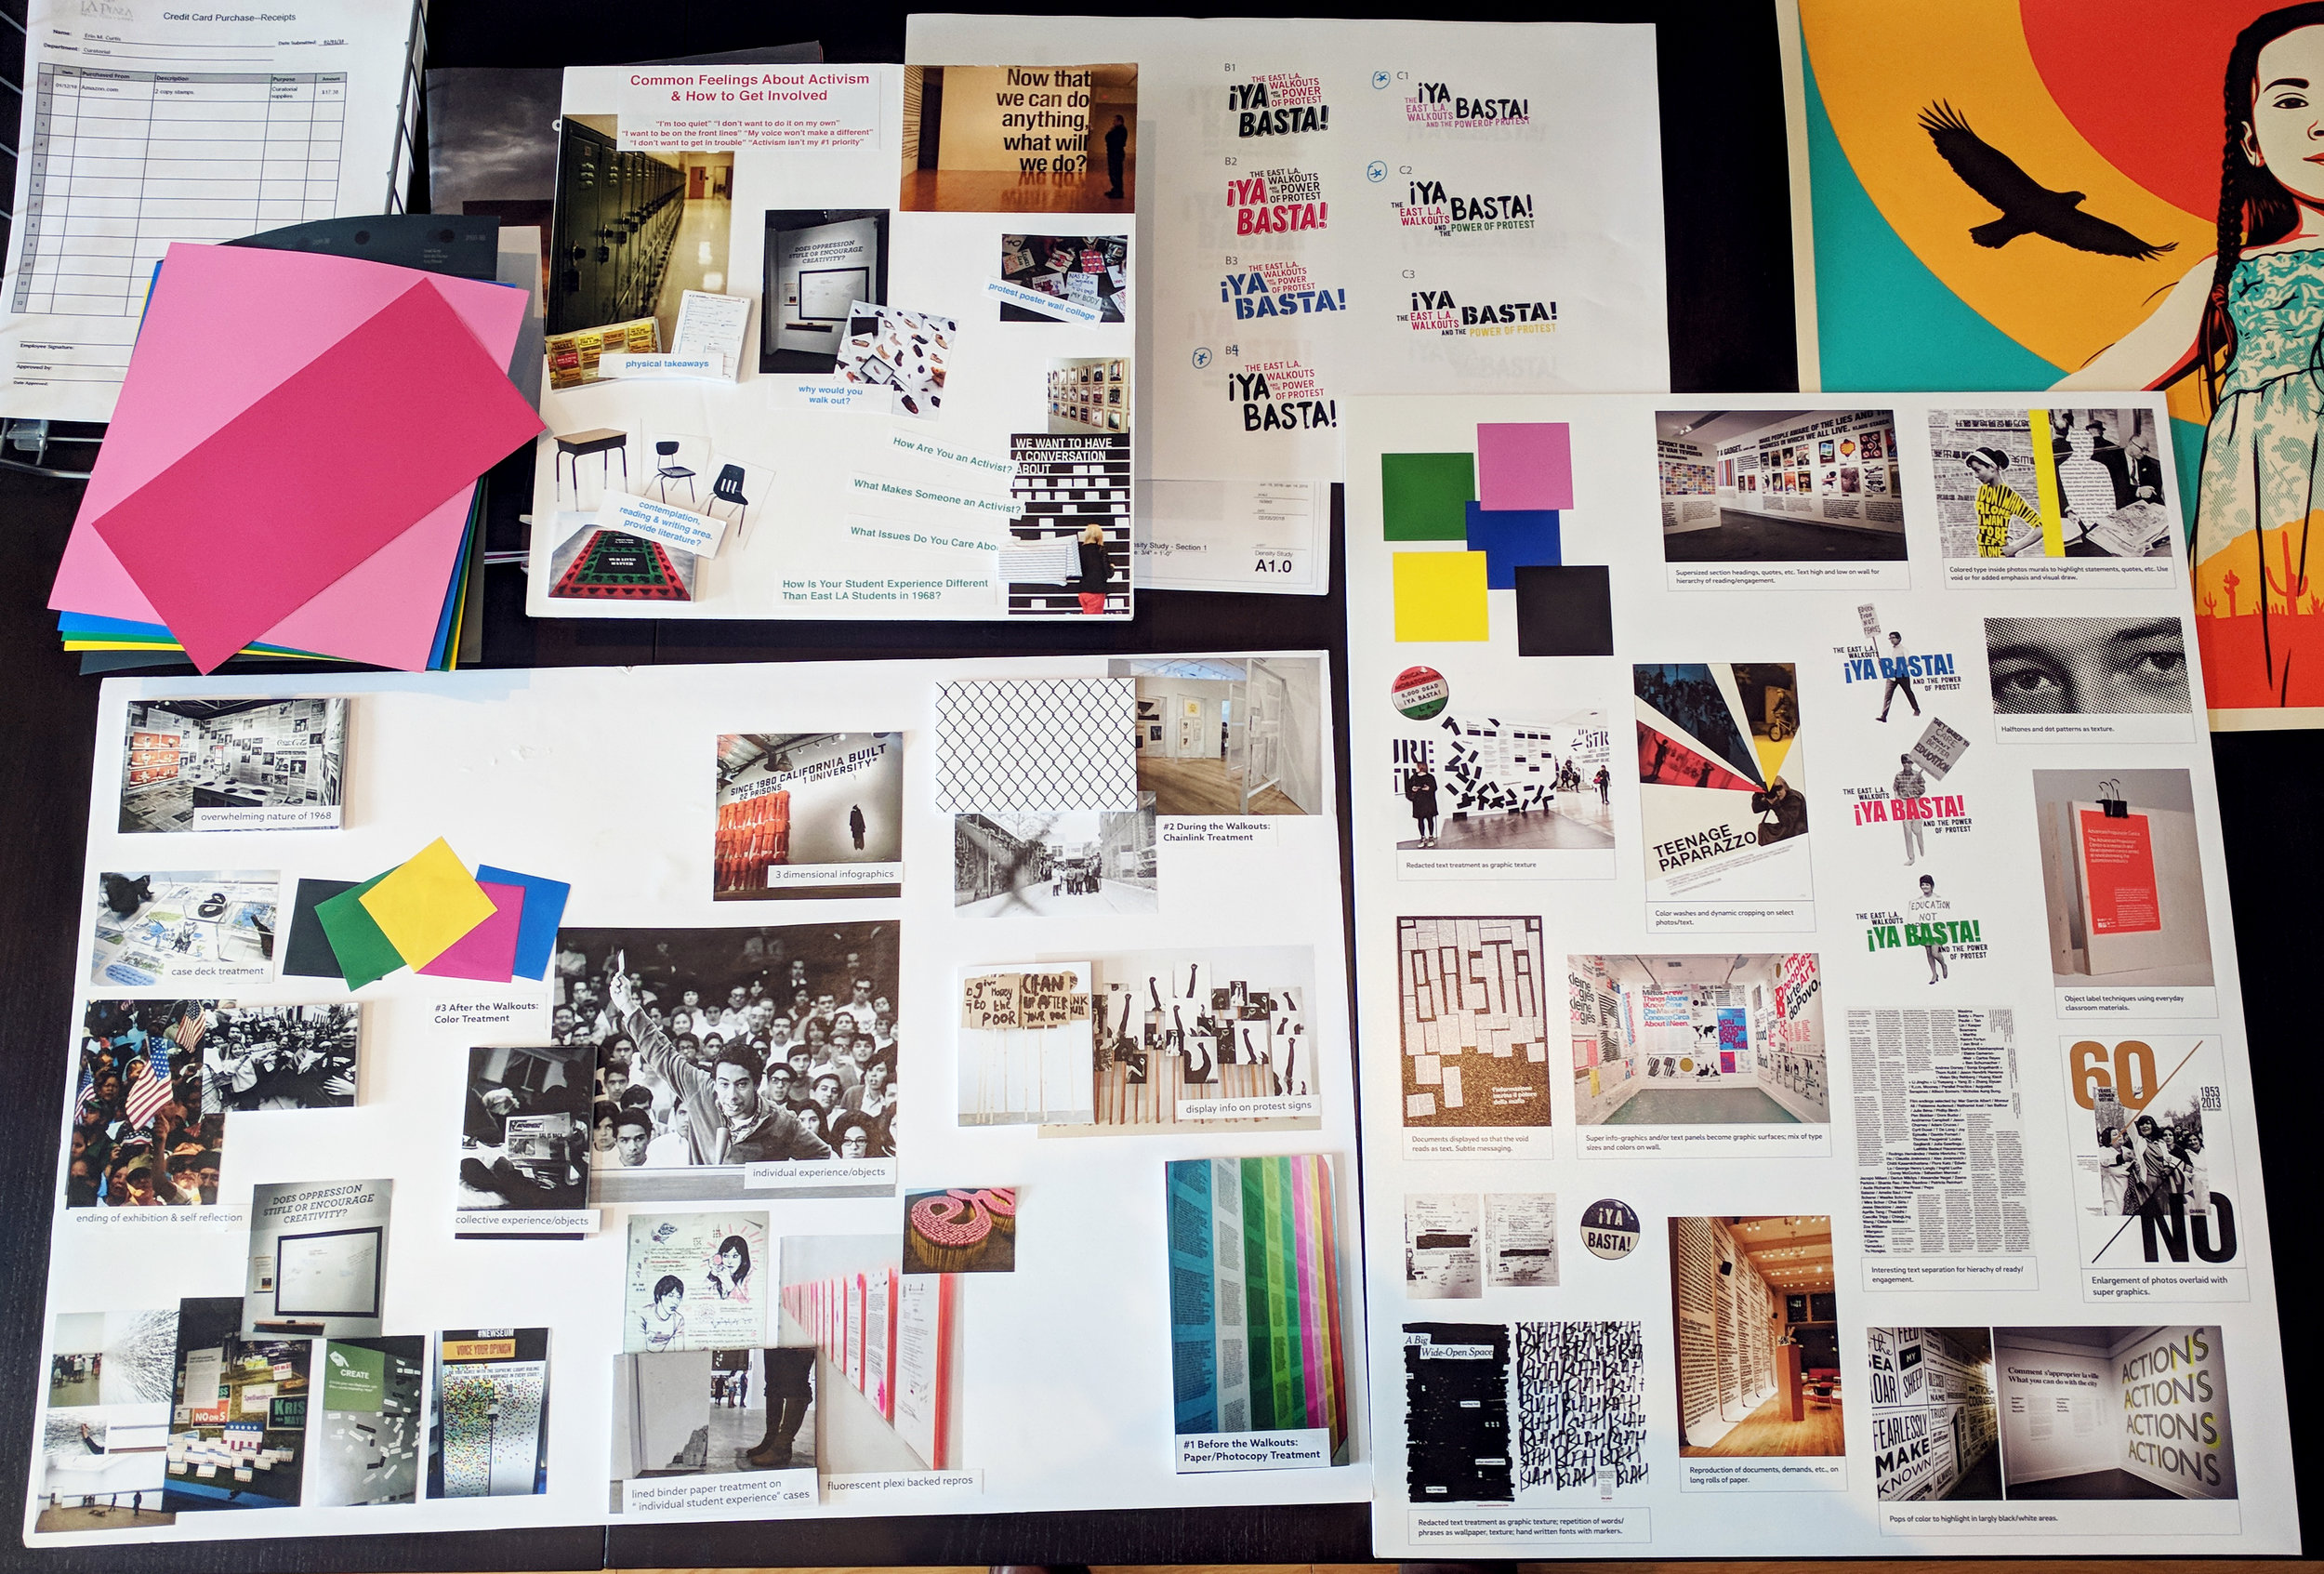 Mood boards for 2- and 3-dimensional design.